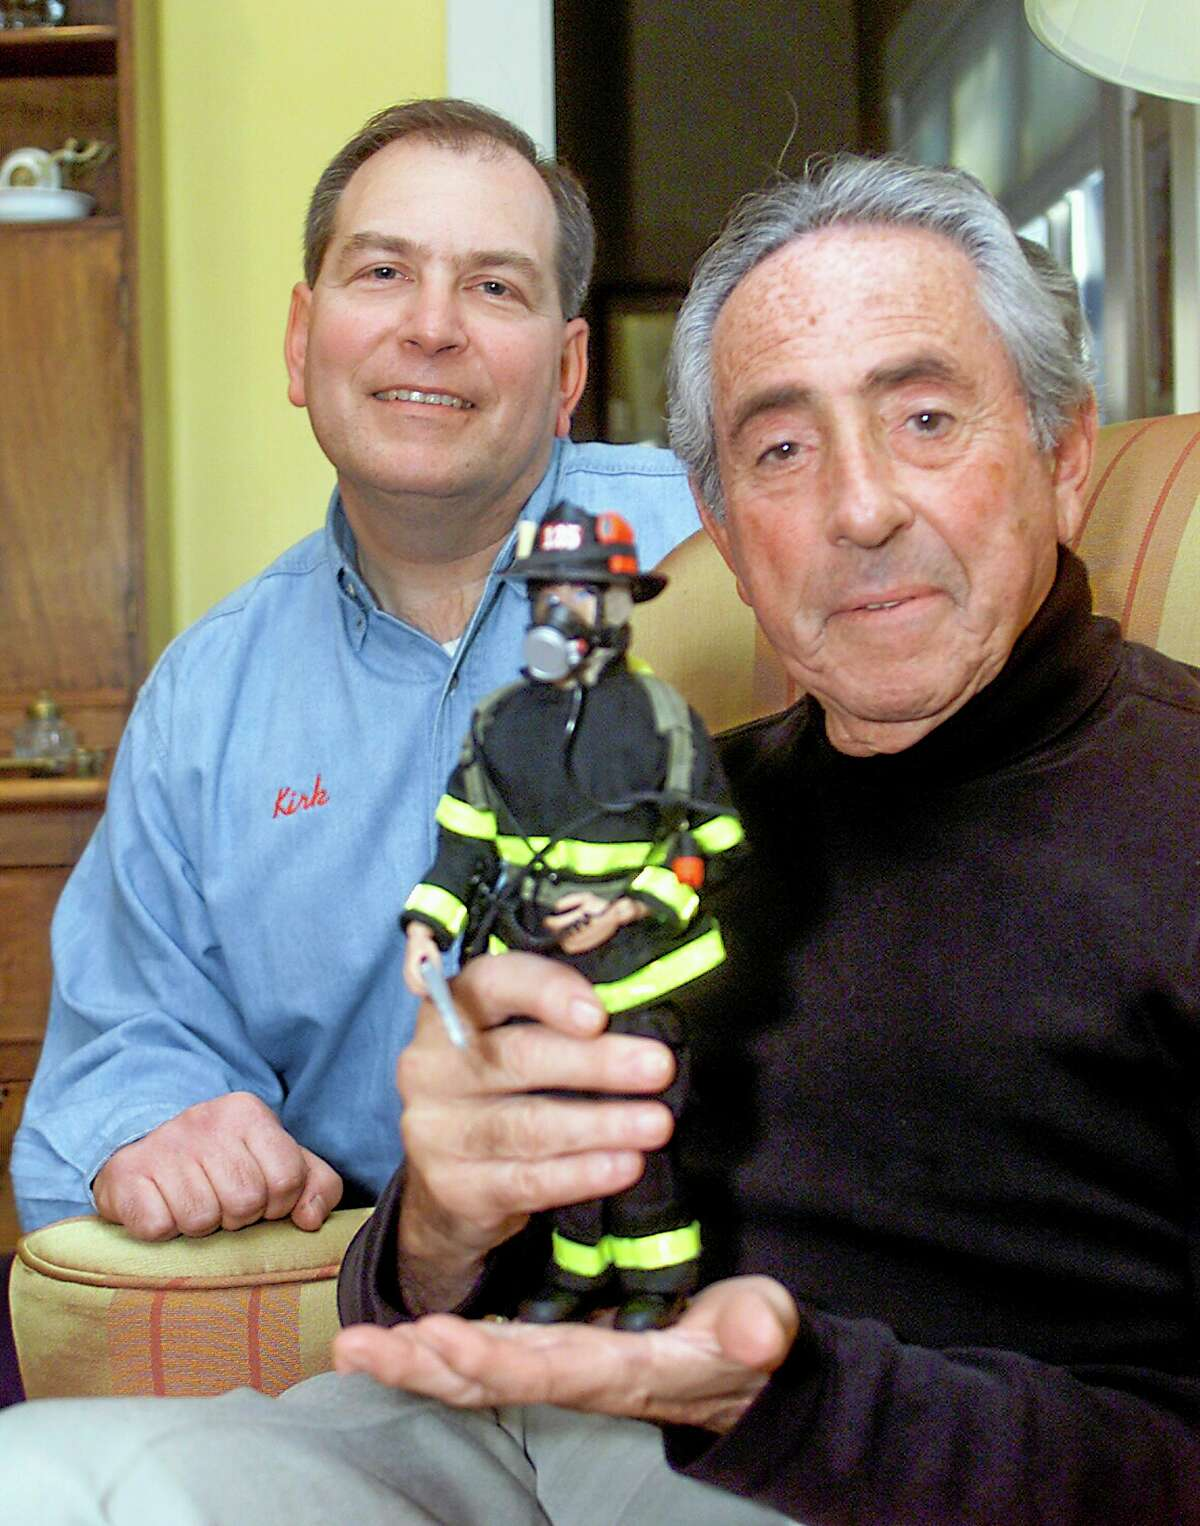 FILE - In this Dec. 7, 2001 file photo, Kirk Bozigian, left, and Don Levine, co-founders of Real Heroes Inc., show one of their collectible designs, a New York City firefighter, in Levine's home in Providence, R.I. Levine, the Hasbro executive credited as the father of G.I. Joe for developing the world's first action figure, died of cancer early Thursday, May 22, 2014, at Home & Hospice Care of Rhode Island, said his wife, Nan. He was 86. (AP Photo/Stew Milne, File)